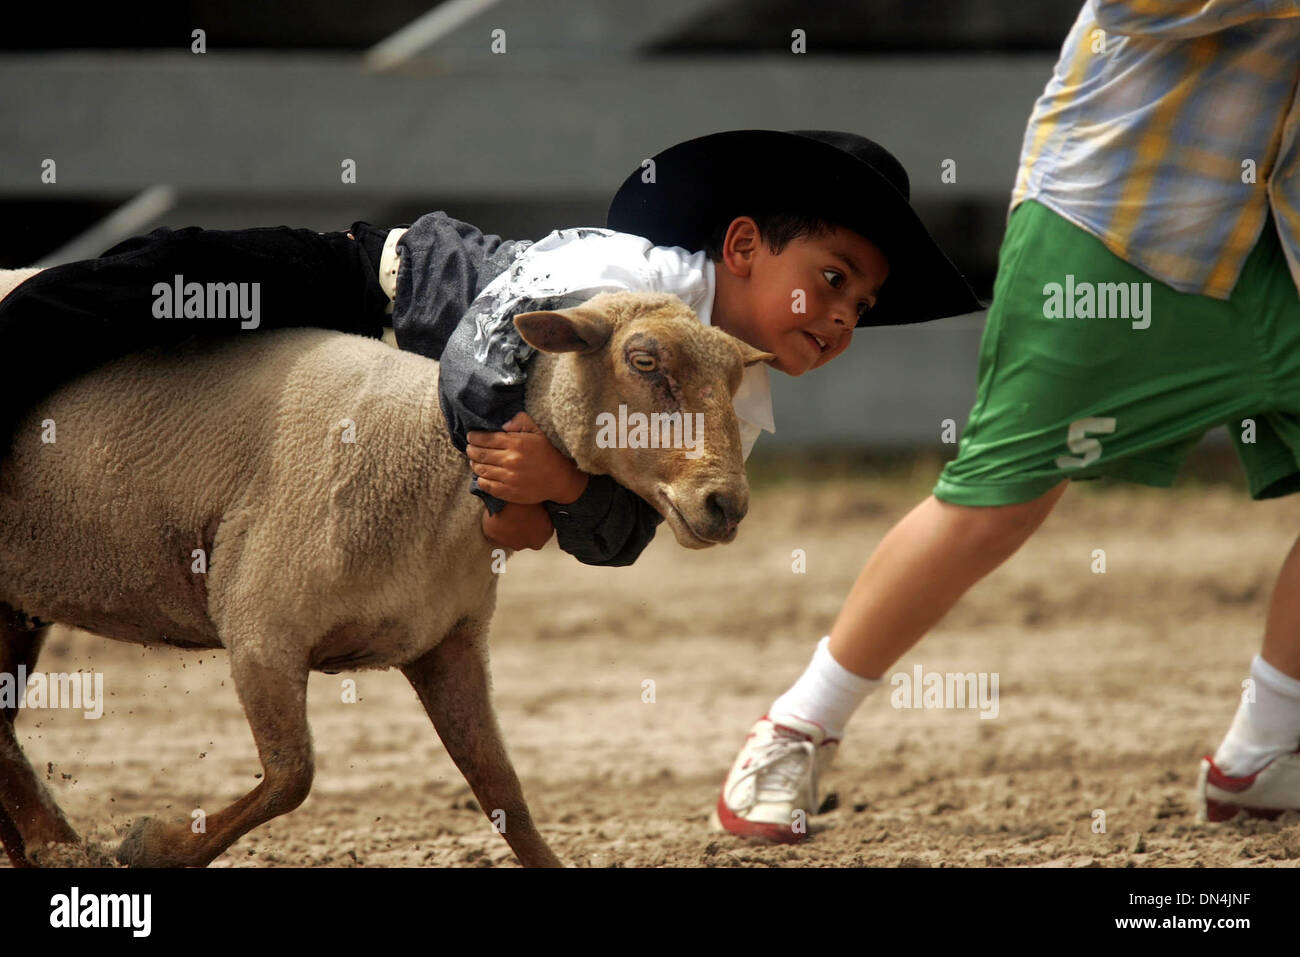 Sep 02, 2006; Okeechobee, FL, USA; The Okeechobee Cattlemen's Association Rodeo started Saturday and runs through Labor Day. Here, Luis Santibanez hangs on tight during the Mutton Bustin' which was before the rodeo Saturday. Mandatory Credit: Photo by Libby Volgyes/Palm Beach Post/ZUMA Press. (©) Copyright 2006 by Palm Beach Post - Stock Image